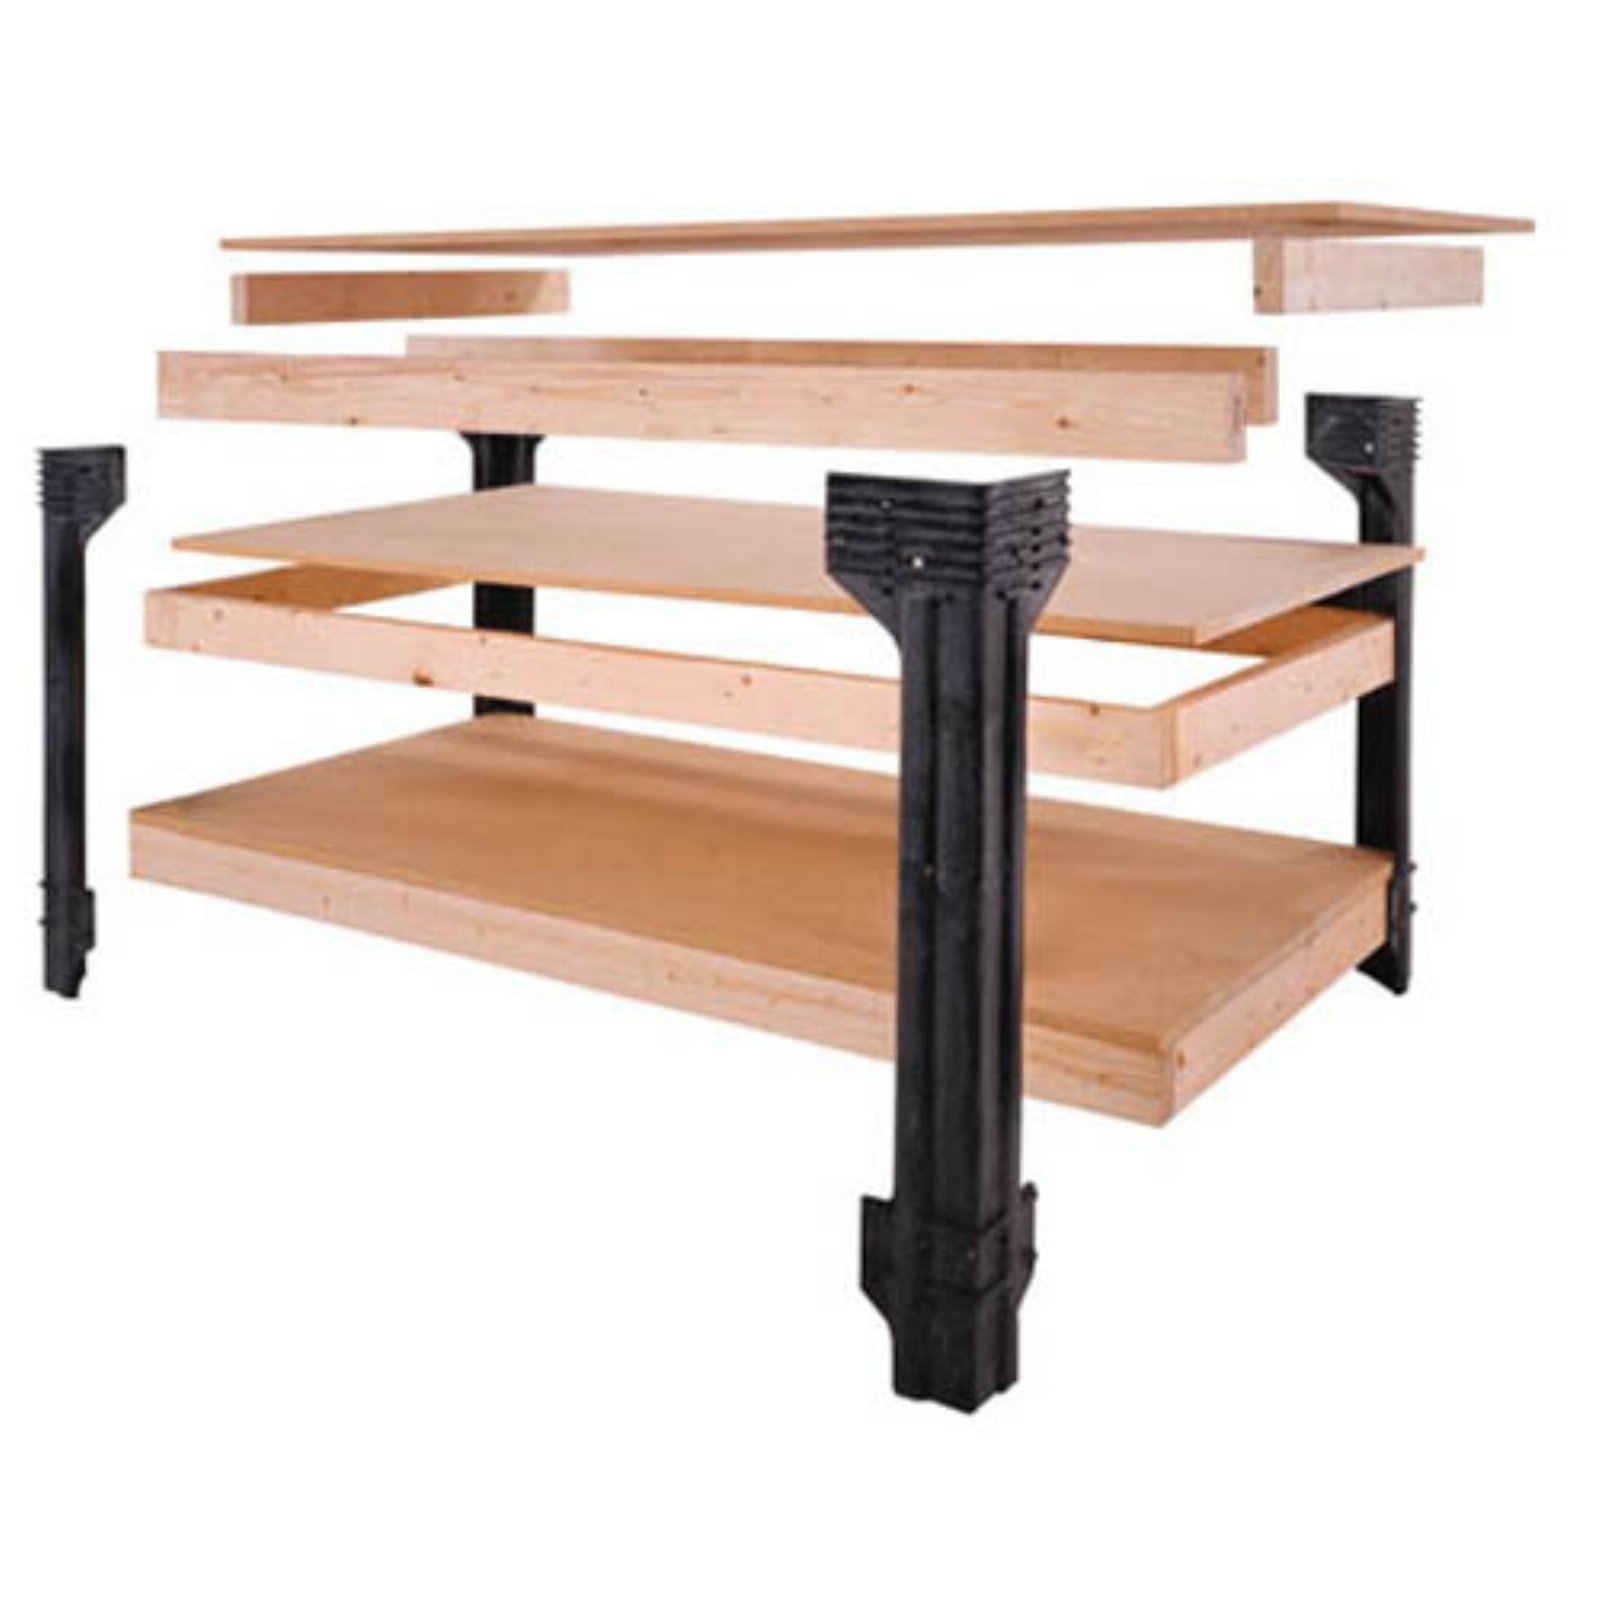 Excellent 2X4Basics Workbench Legs Walmart Com Gmtry Best Dining Table And Chair Ideas Images Gmtryco